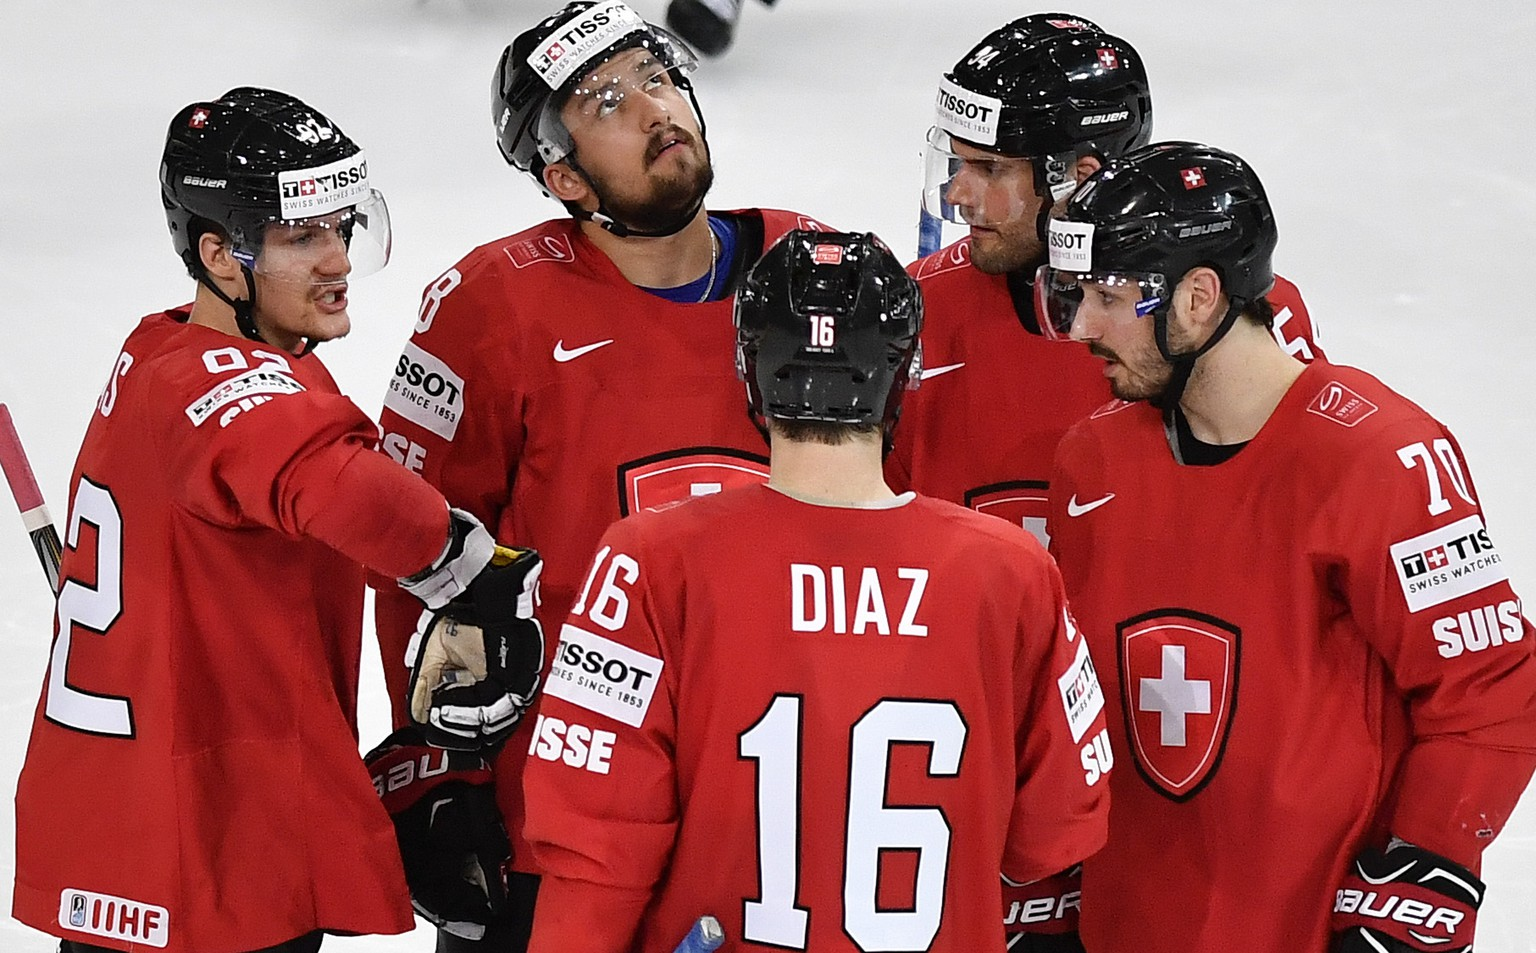 Switzerland's Gaetan Haas, Vincent Praplan, Raphael Diaz, Philippe Furrer and Denis Hollenstein, from left, speak during their Ice Hockey World Championship group B preliminary round match between Switzerland and Belarus in Paris, France on Wednesday, May 10, 2017. (KEYSTONE/Peter Schneider)